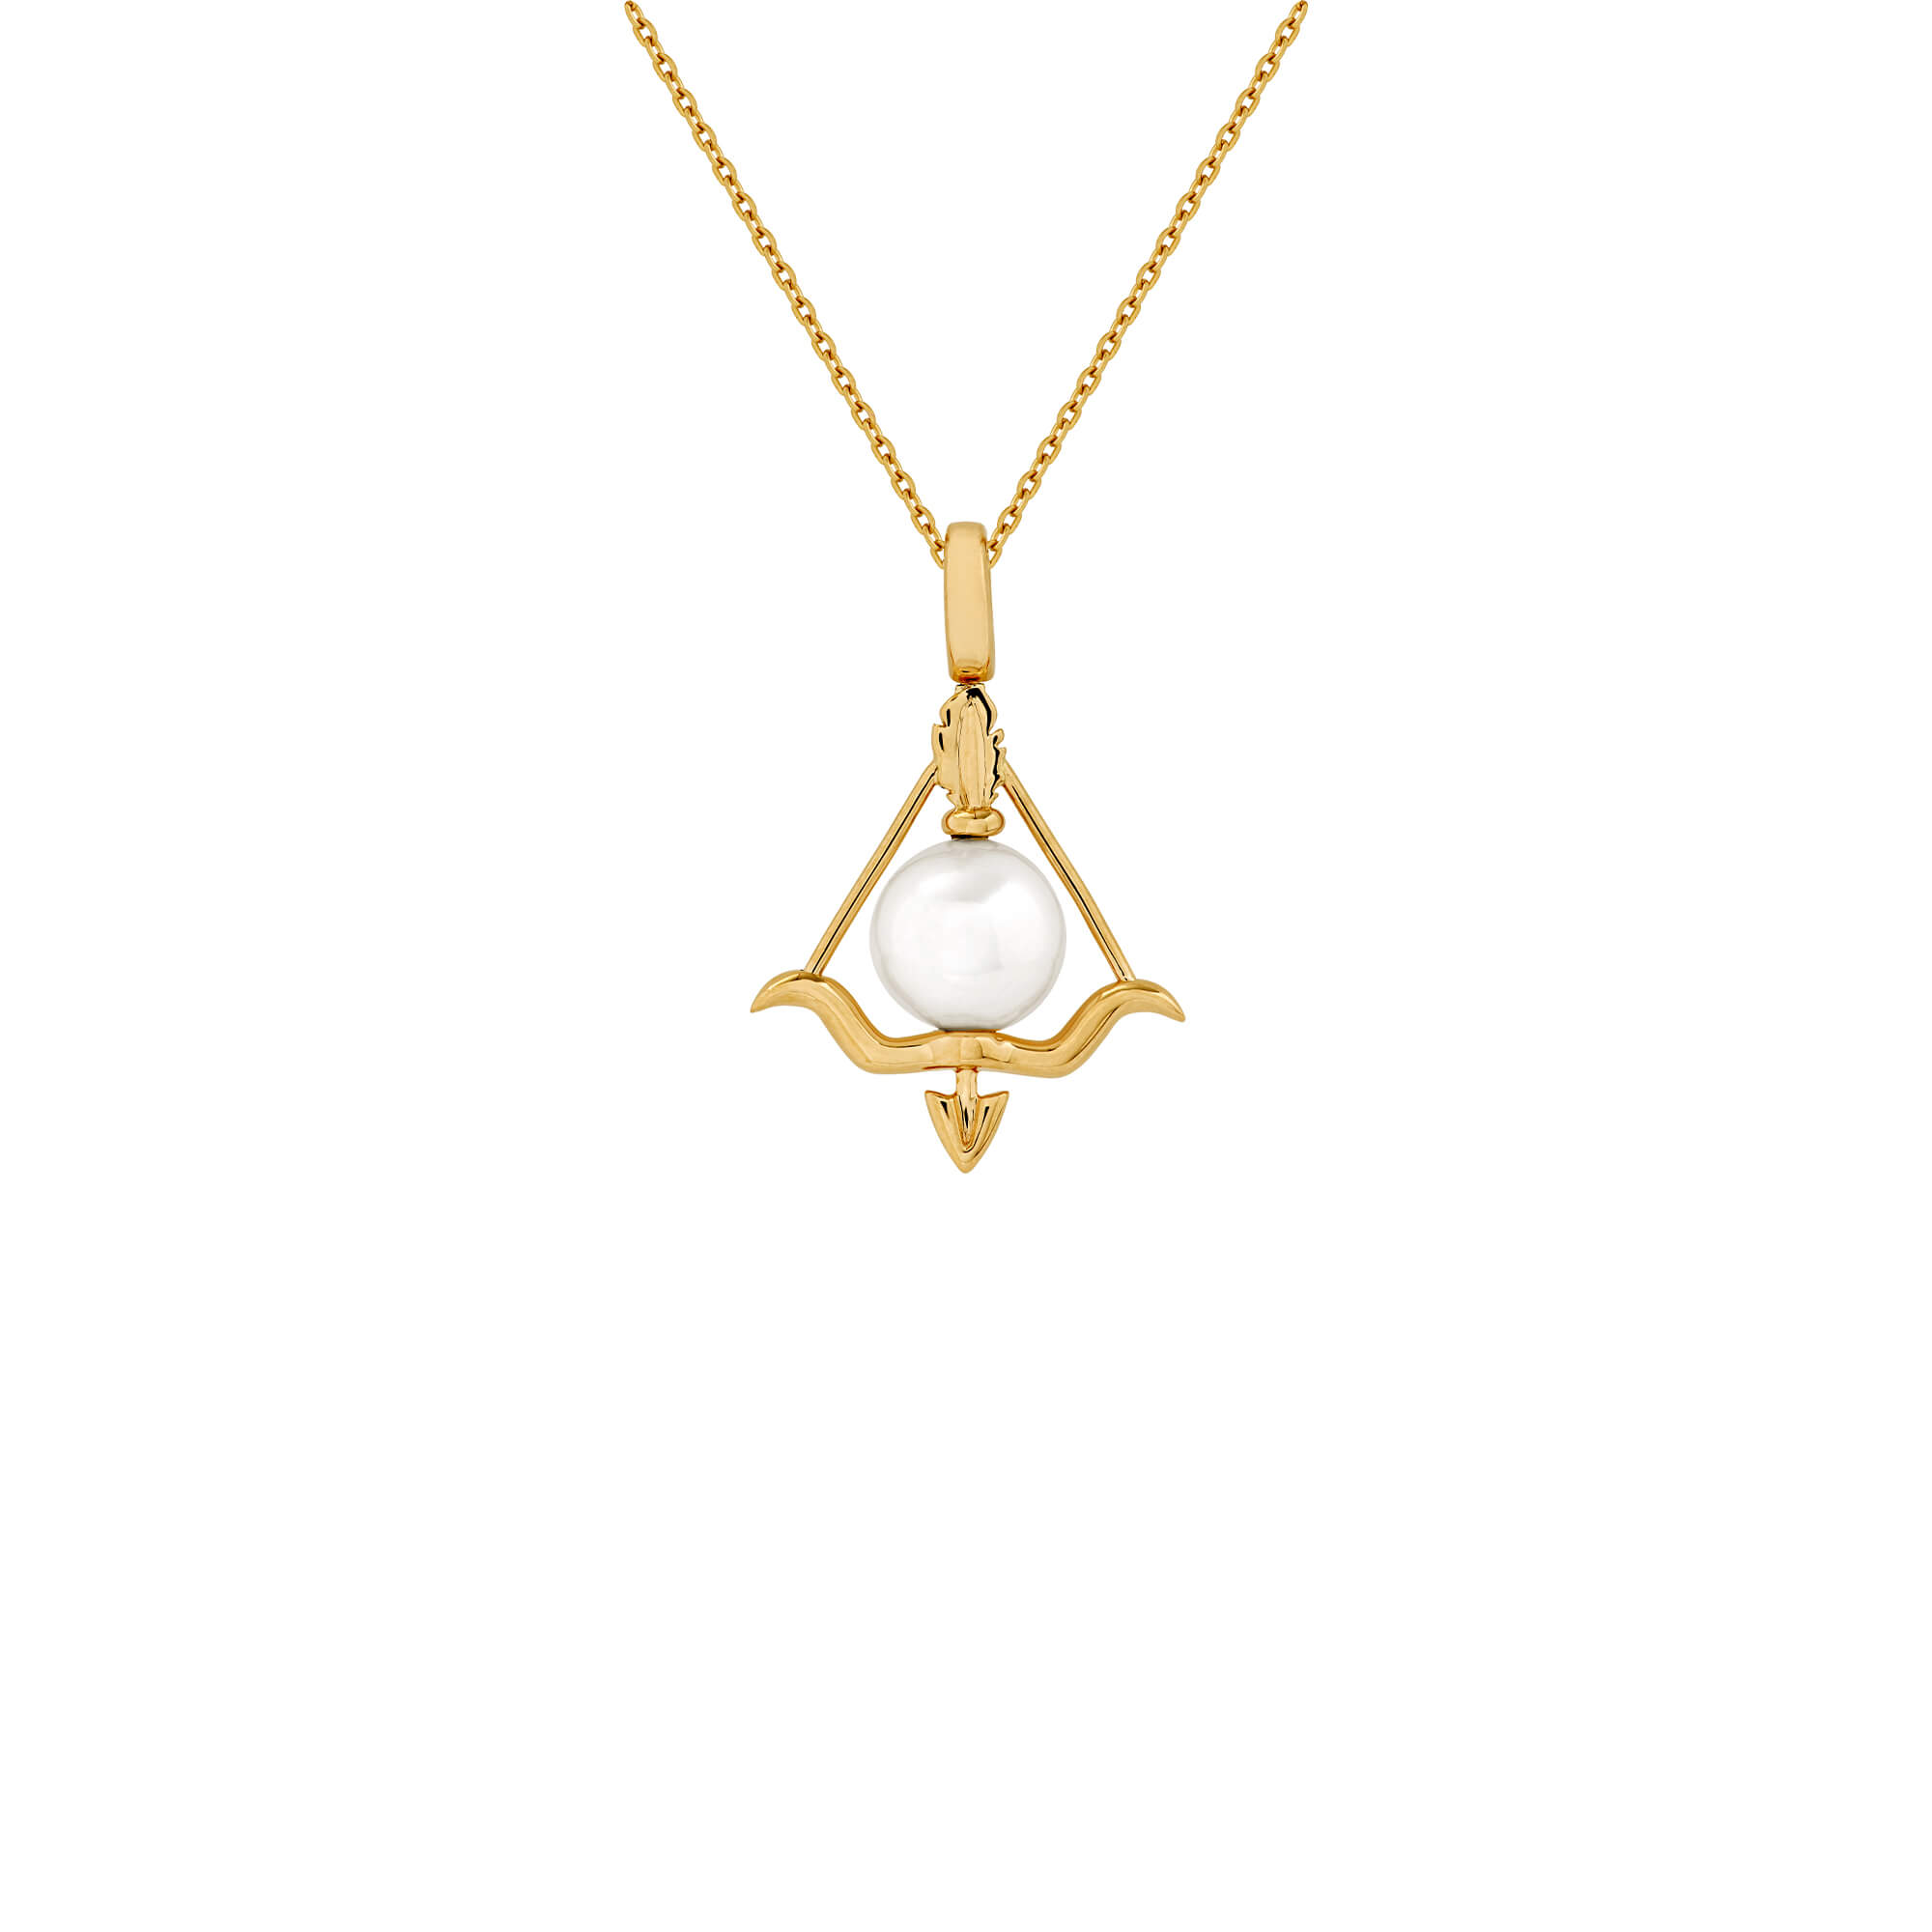 Sagittarius Yellow Gold and White Pearl Necklace | Astro Balls